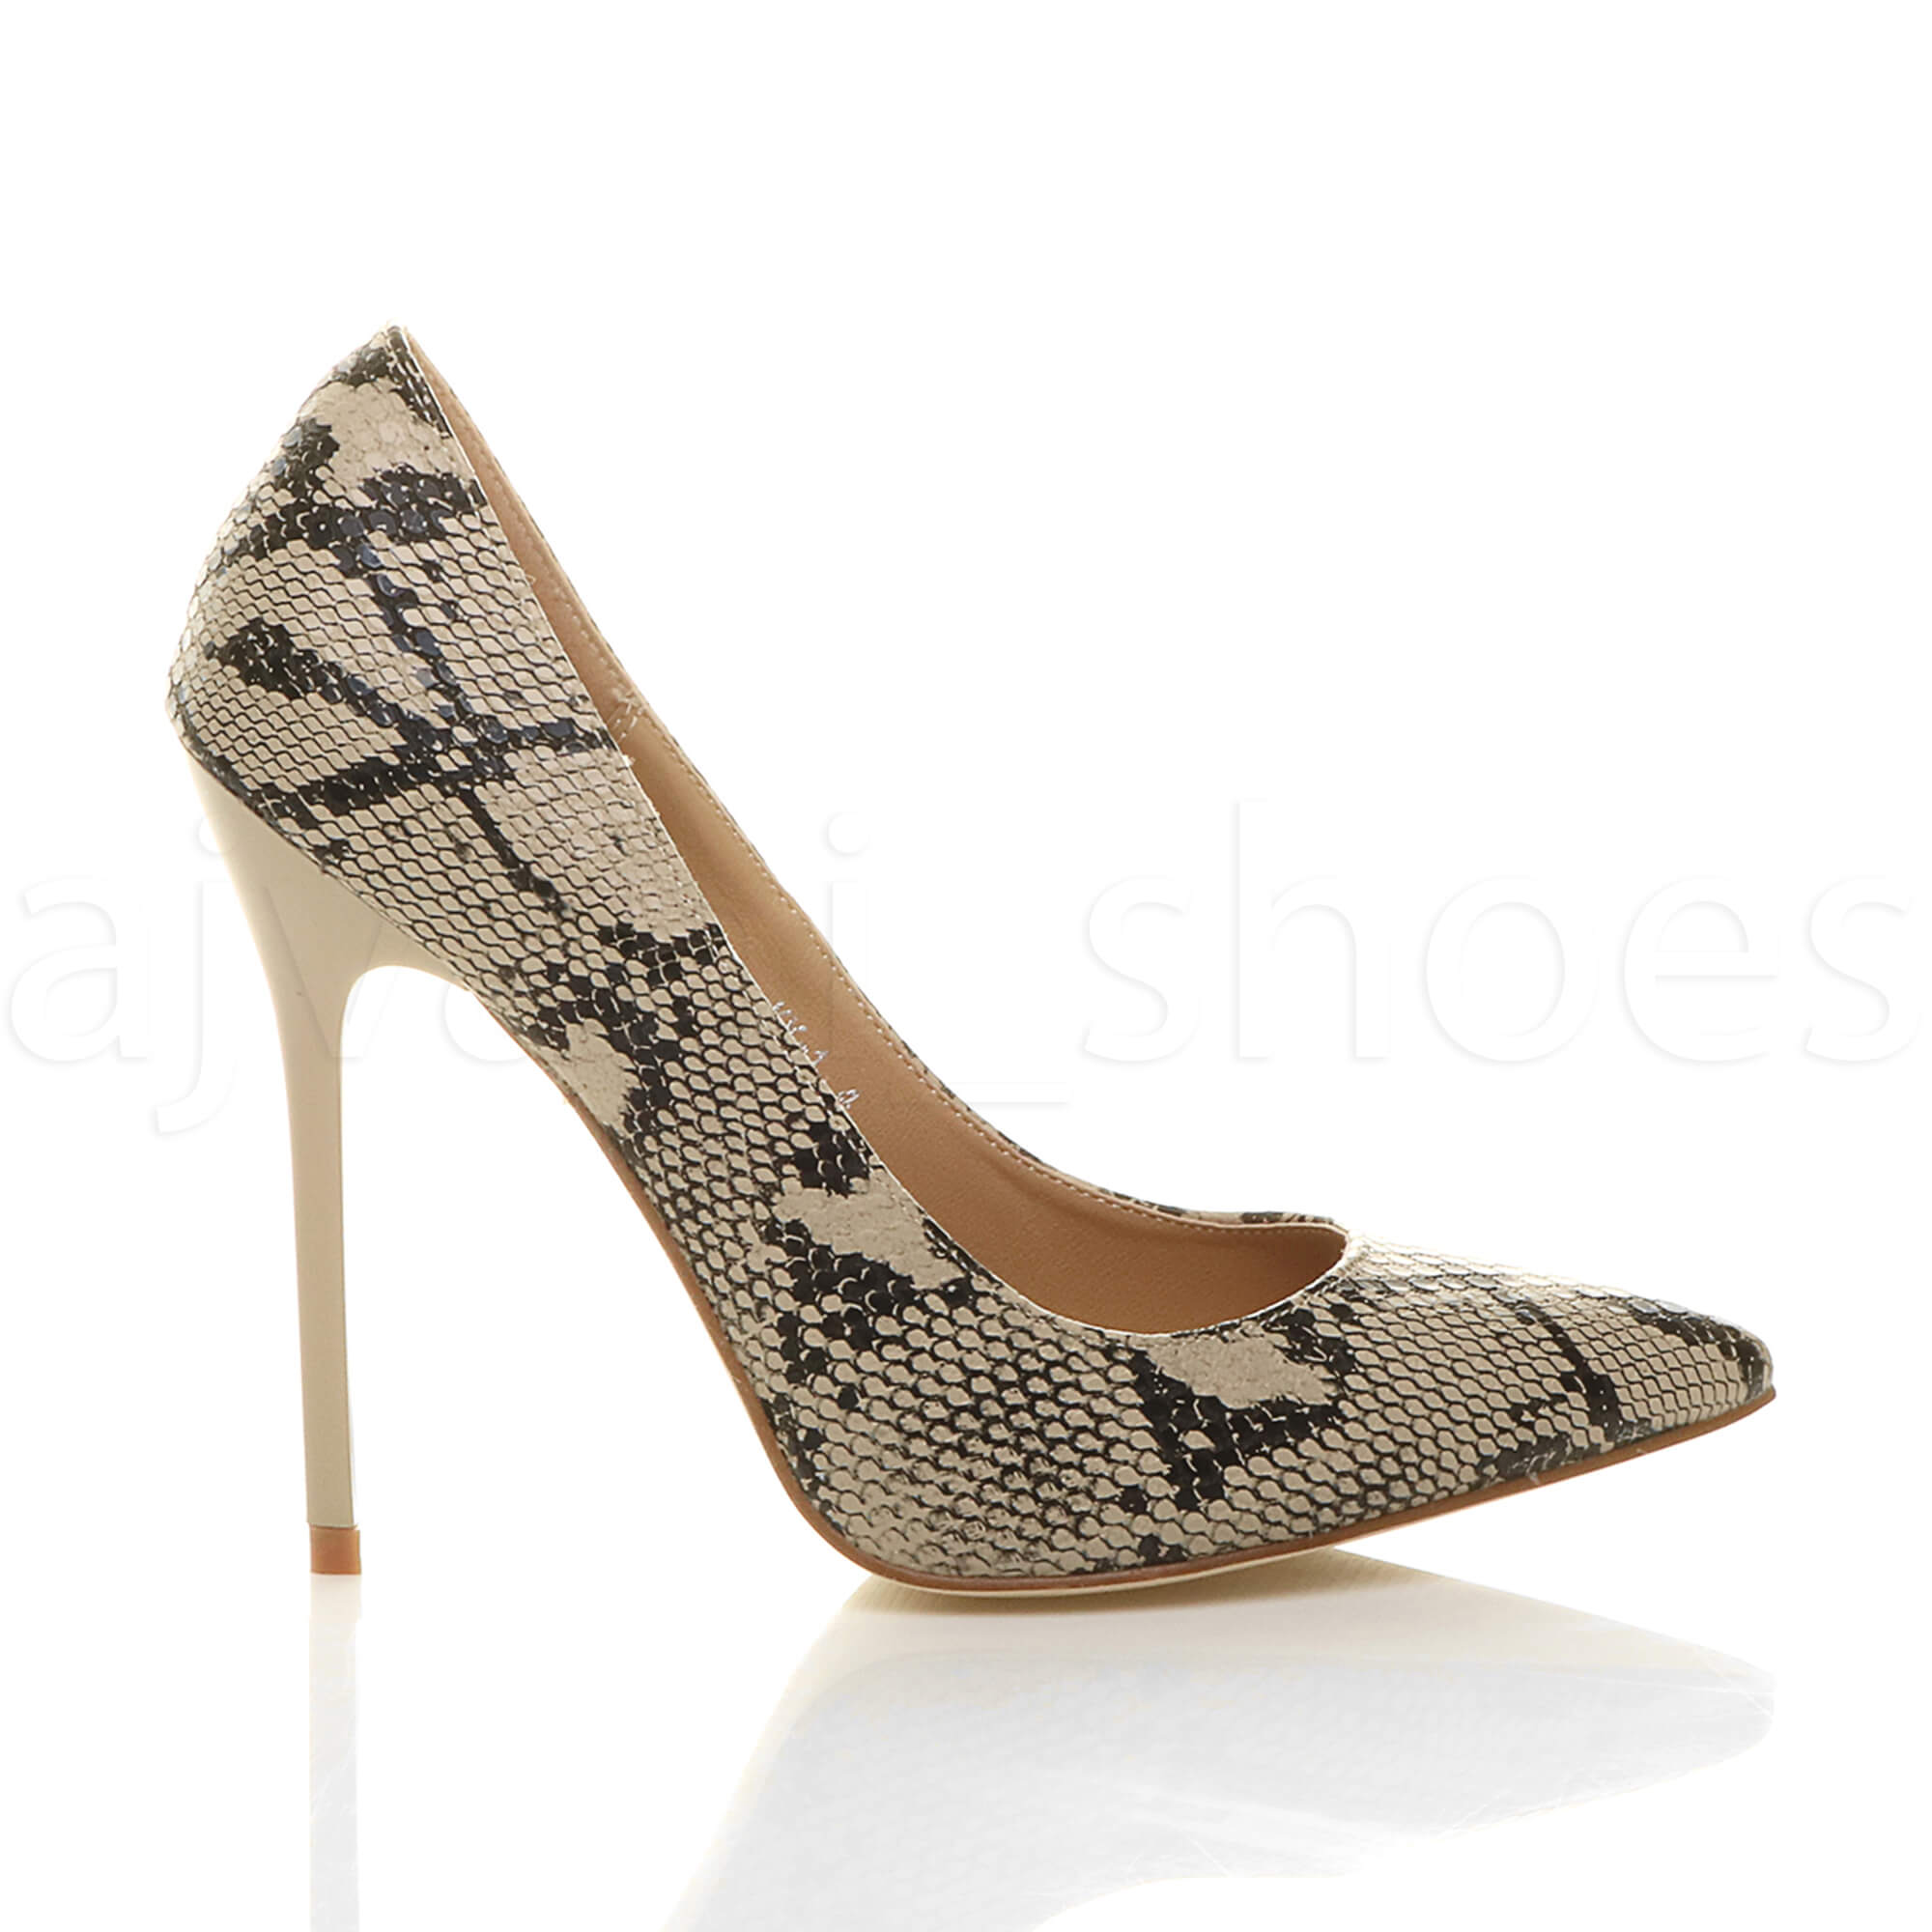 WOMENS-LADIES-HIGH-HEEL-POINTED-CONTRAST-COURT-SMART-PARTY-WORK-SHOES-PUMPS-SIZE thumbnail 3